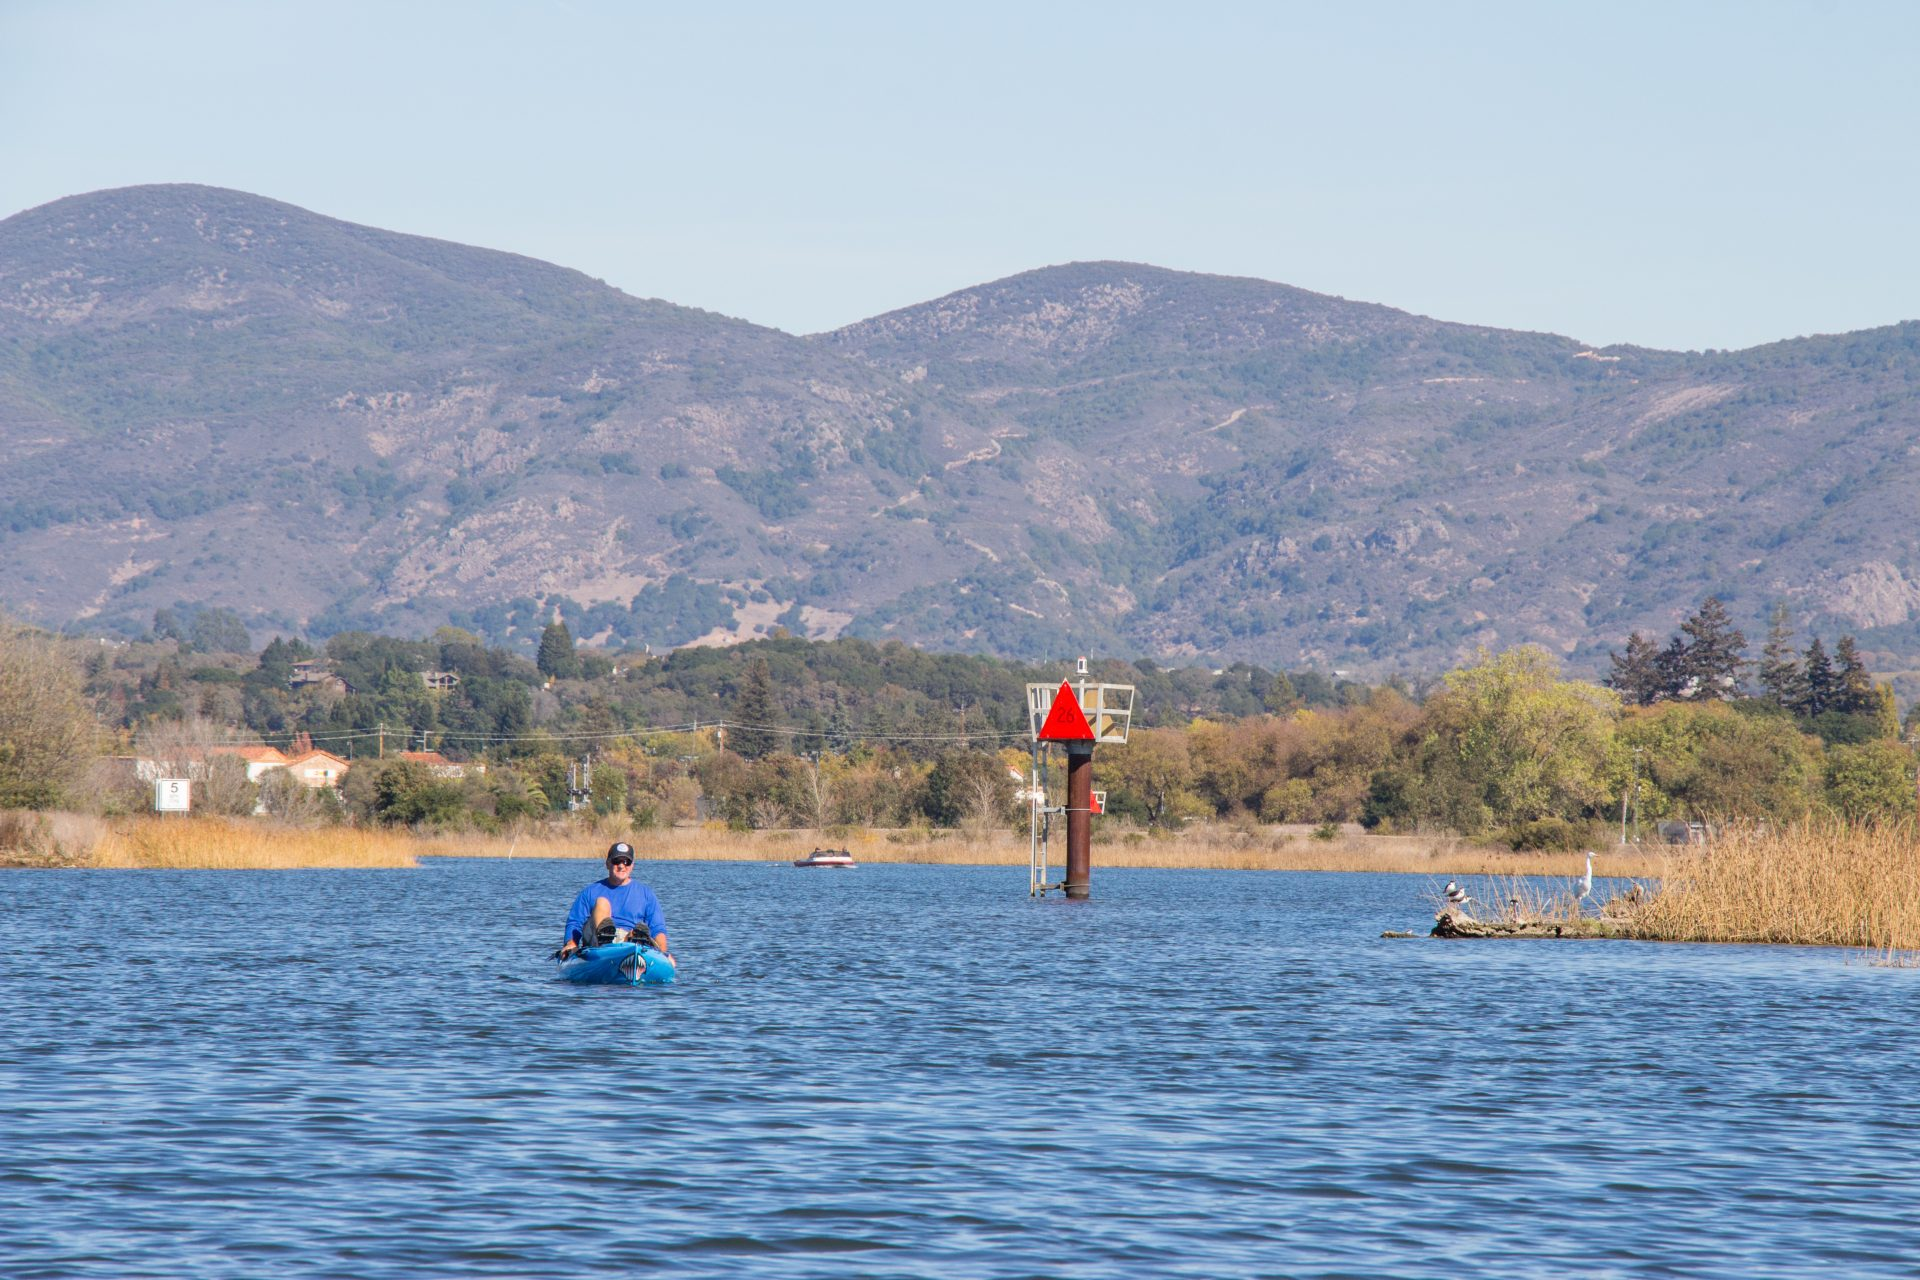 brown hills over blue waters, with loan kayaker paddling toward the camera